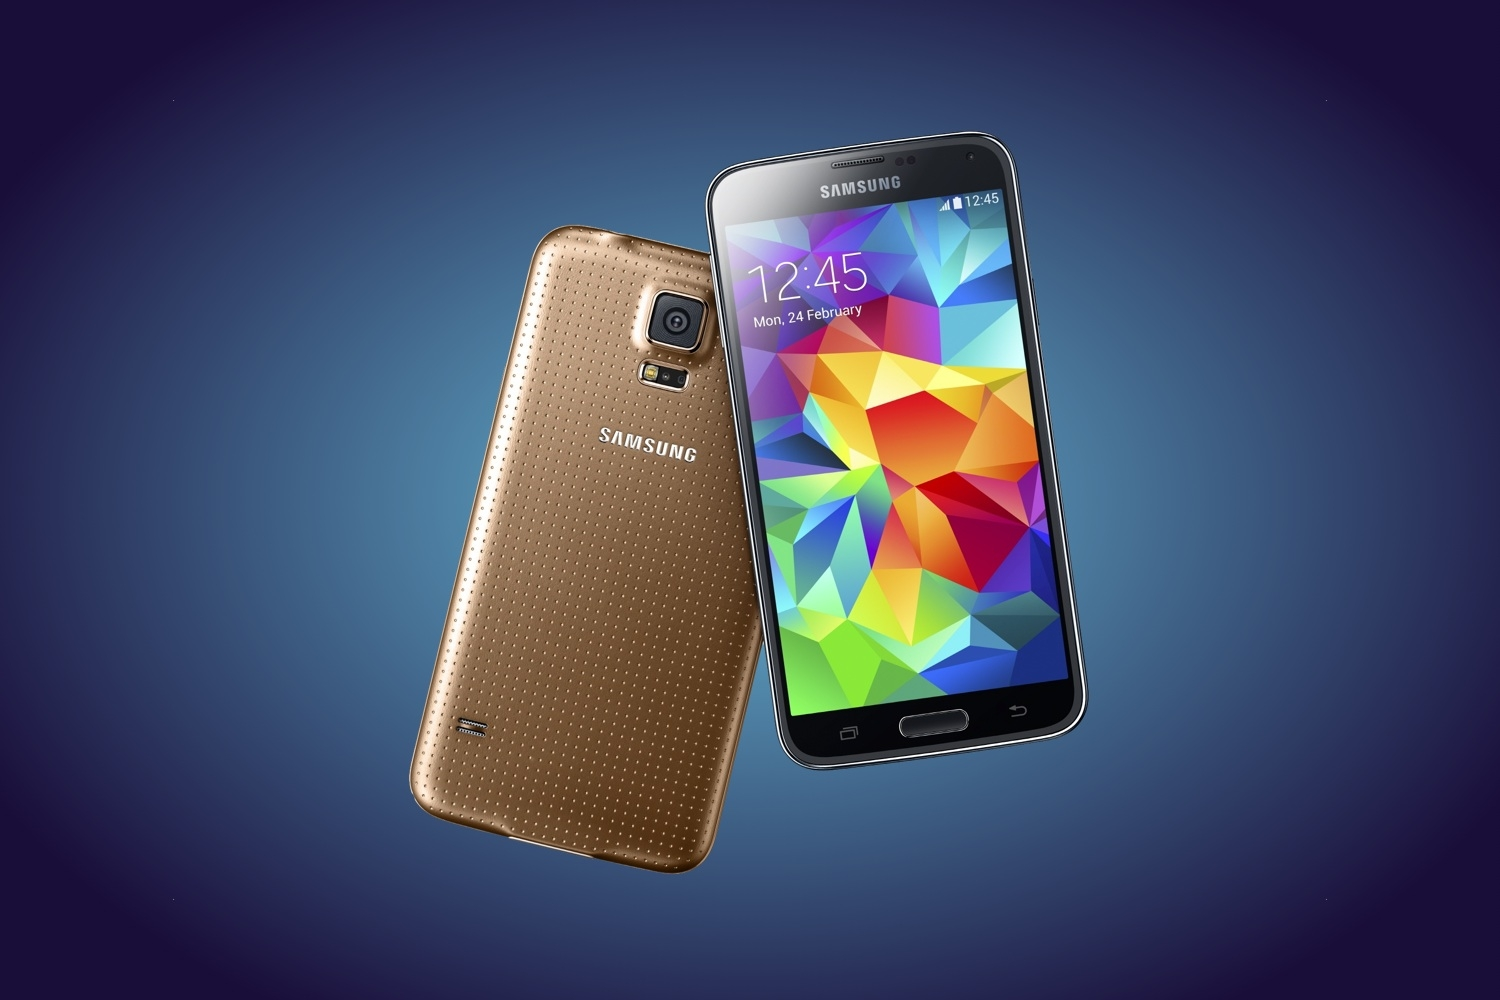 Why Was The Samsung Galaxy S5 A Flop?